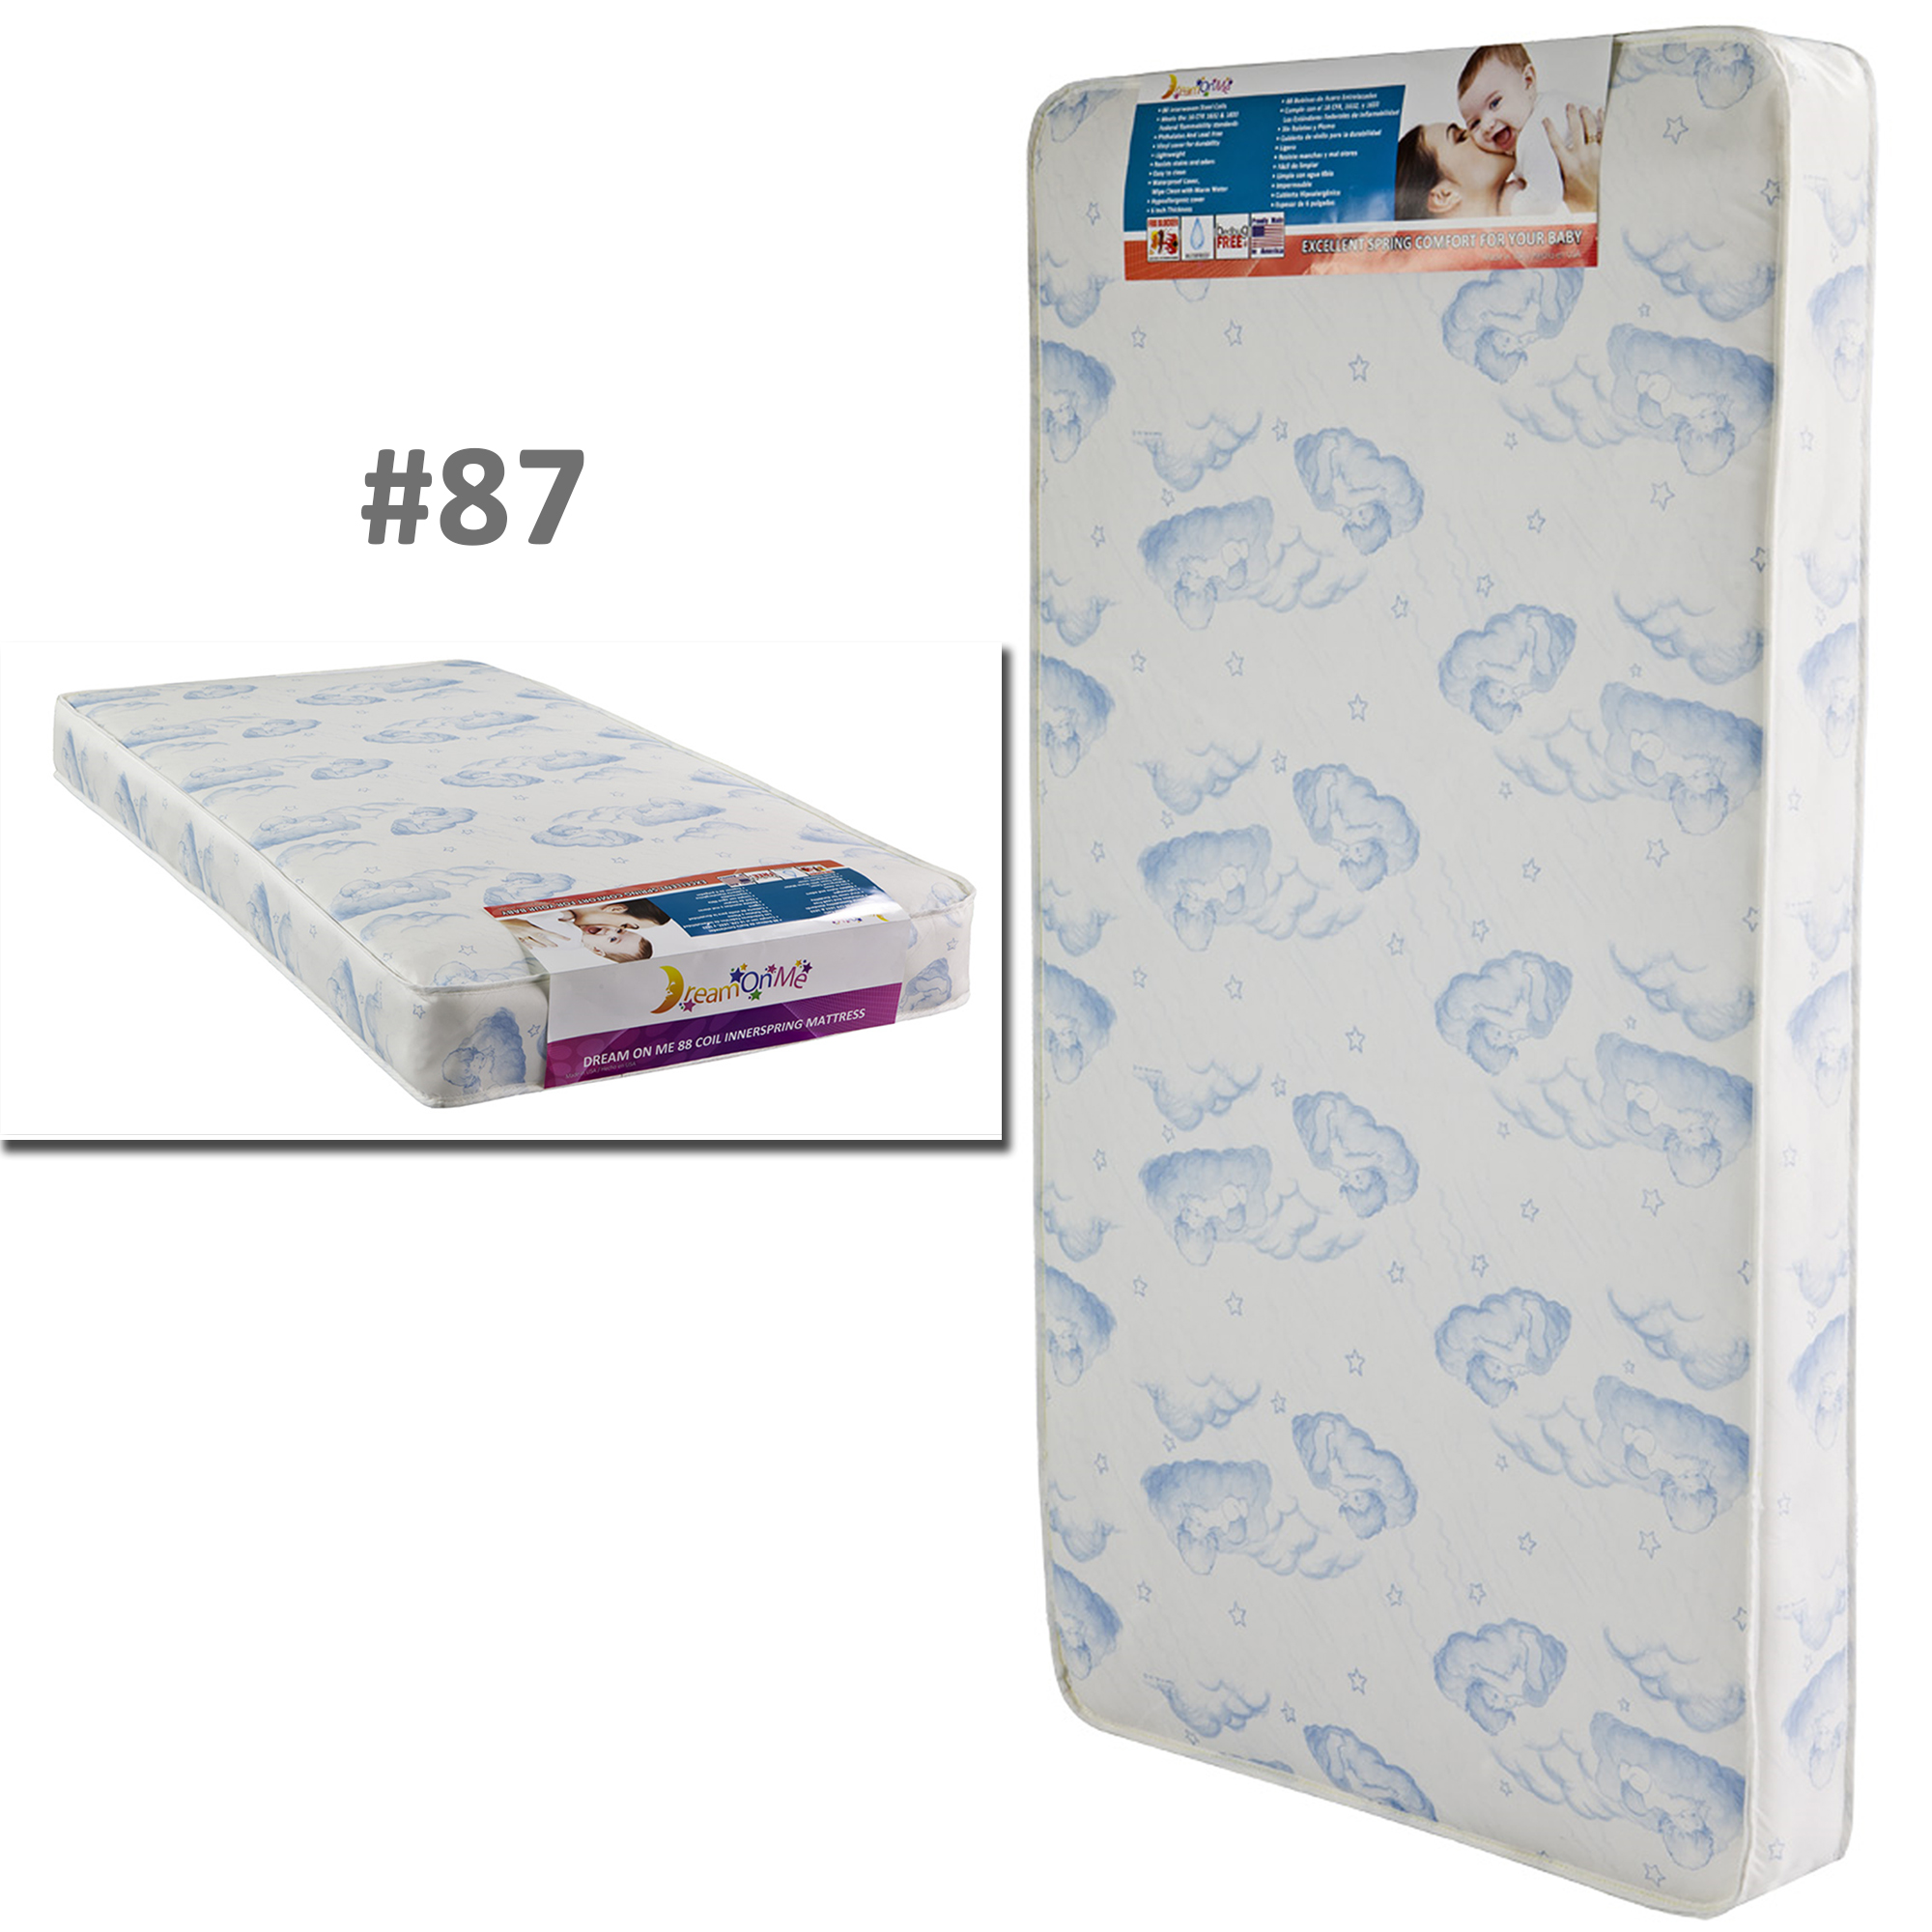 sprung bed img kiddicare x toddler micro category asleep mattress sound mattresses cot